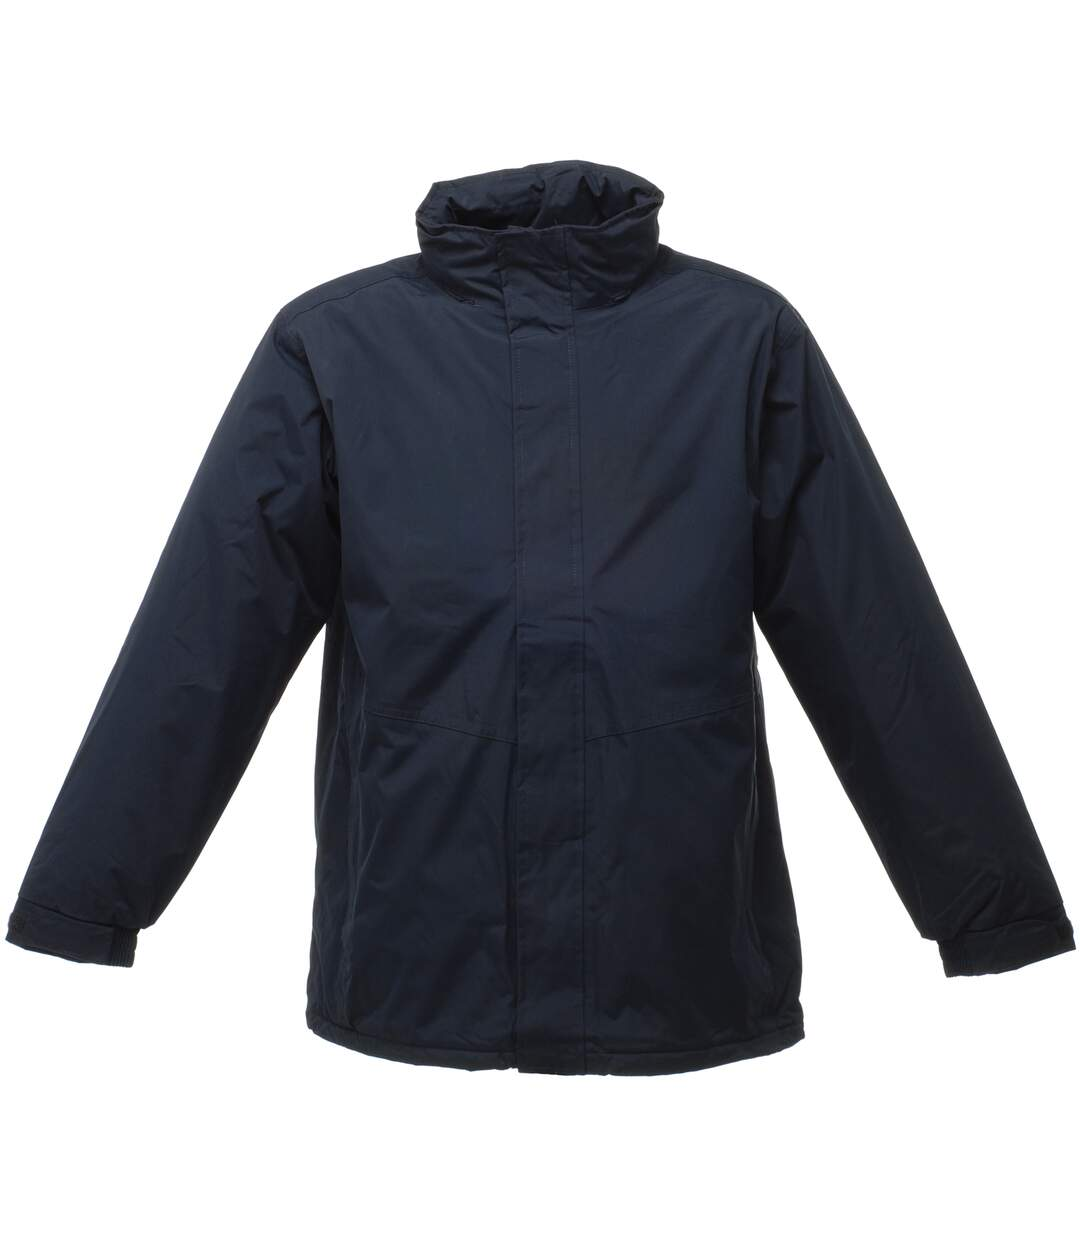 Regatta Mens Beauford Waterproof Windproof Jacket (Thermoguard Insulation) (Navy Blue) - UTBC807